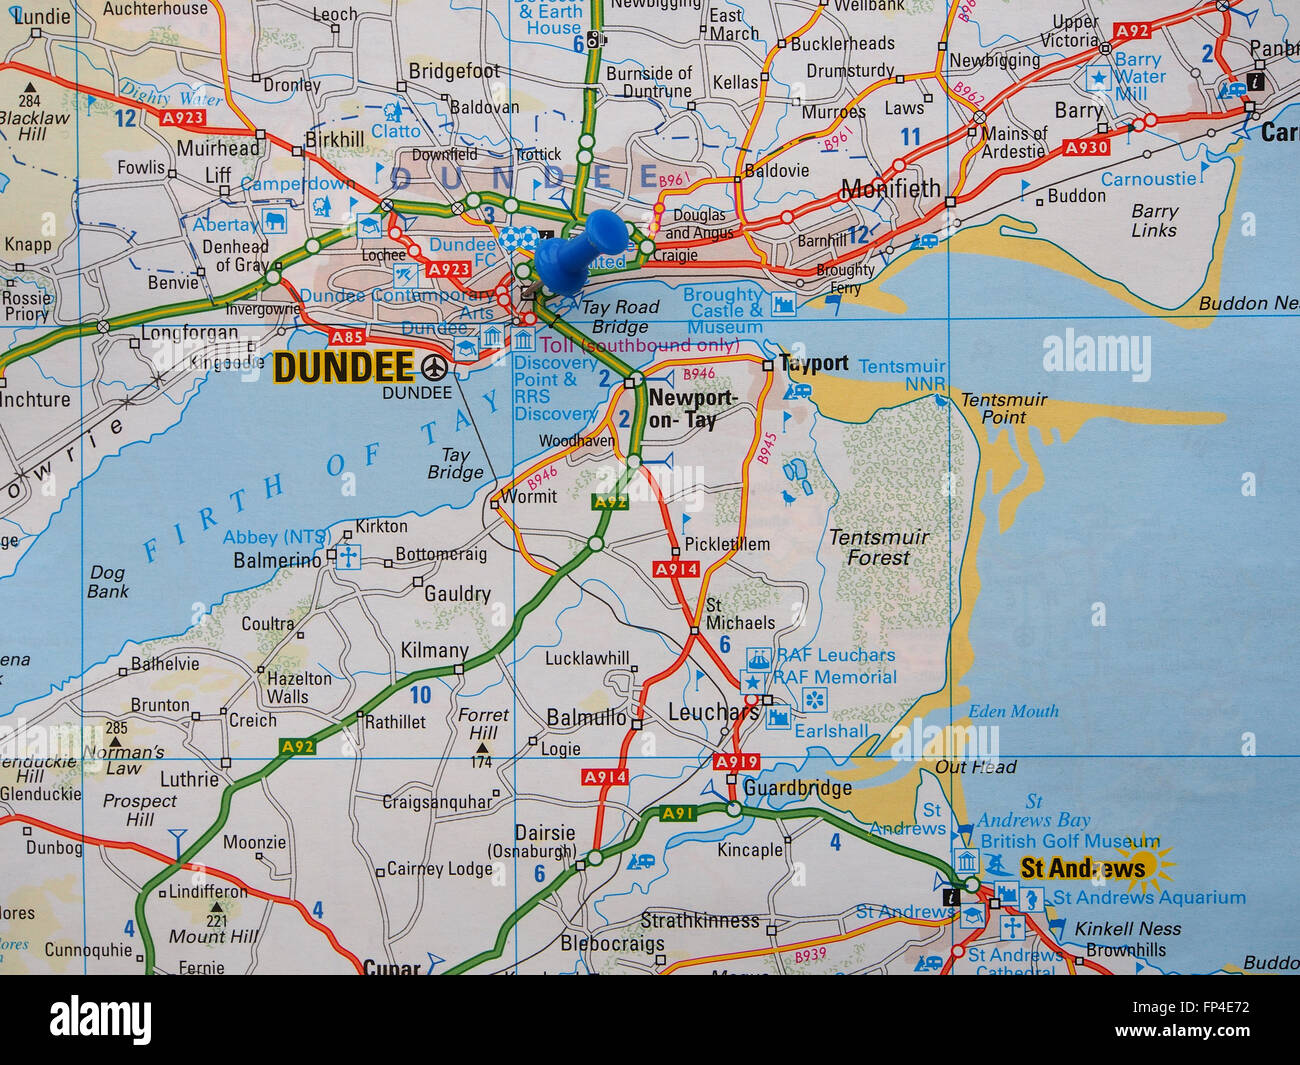 Road map of Scotland showing the Dundee area and with a map pin in